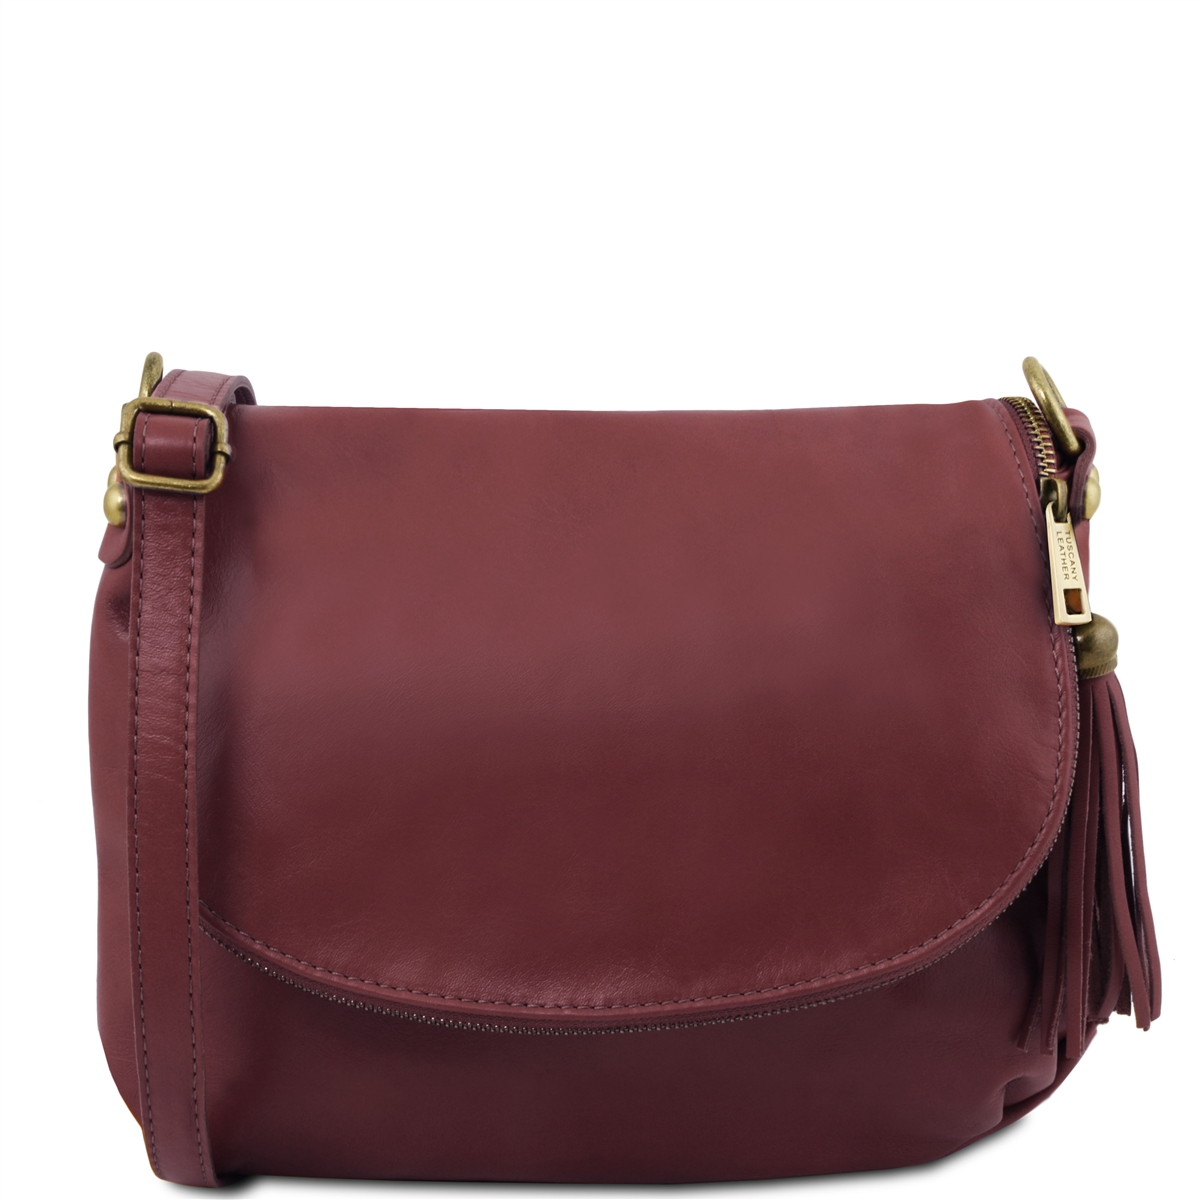 1d464f9c0705 Tuscany Leather TL141223 Small Soft leather shoulder bag - Bordeaux